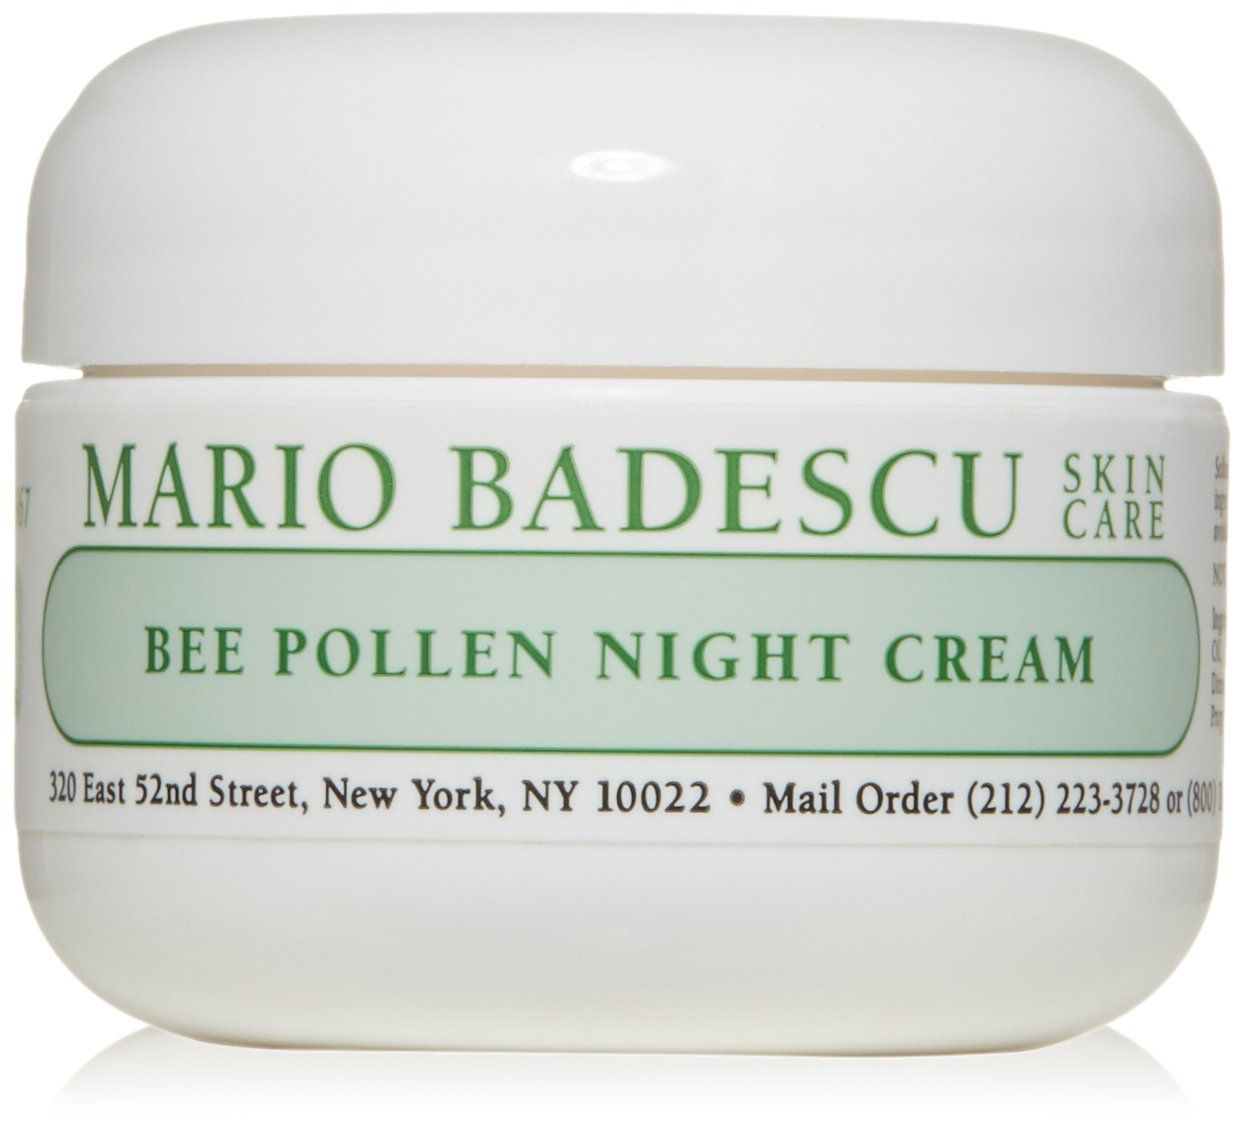 Mario Badescu Bee Pollen Night Cream, 1 oz.